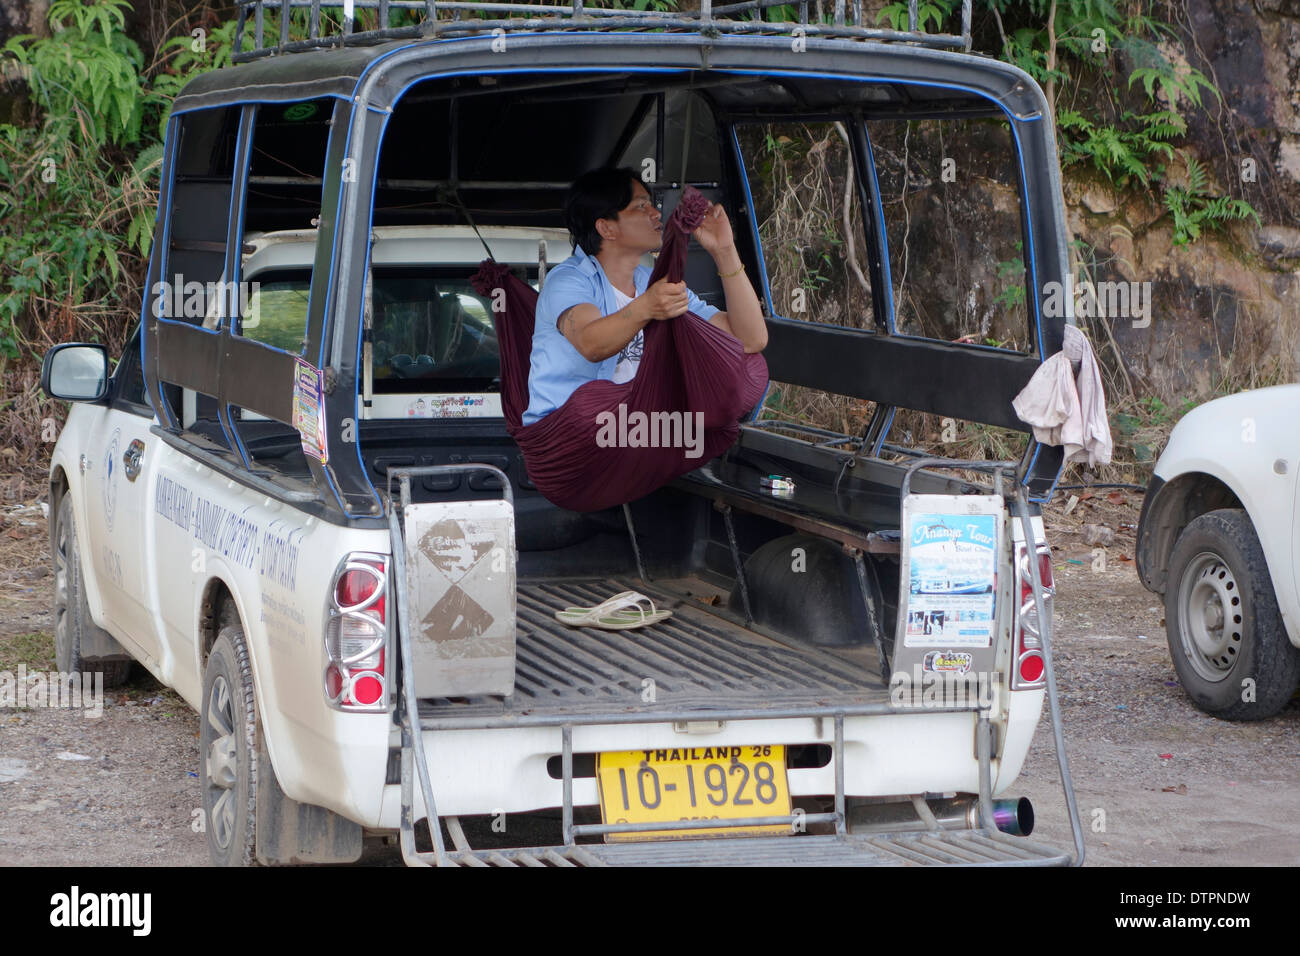 Songthaew driver resting on hammock, Koh Chang Island, Thailand. - Stock Image